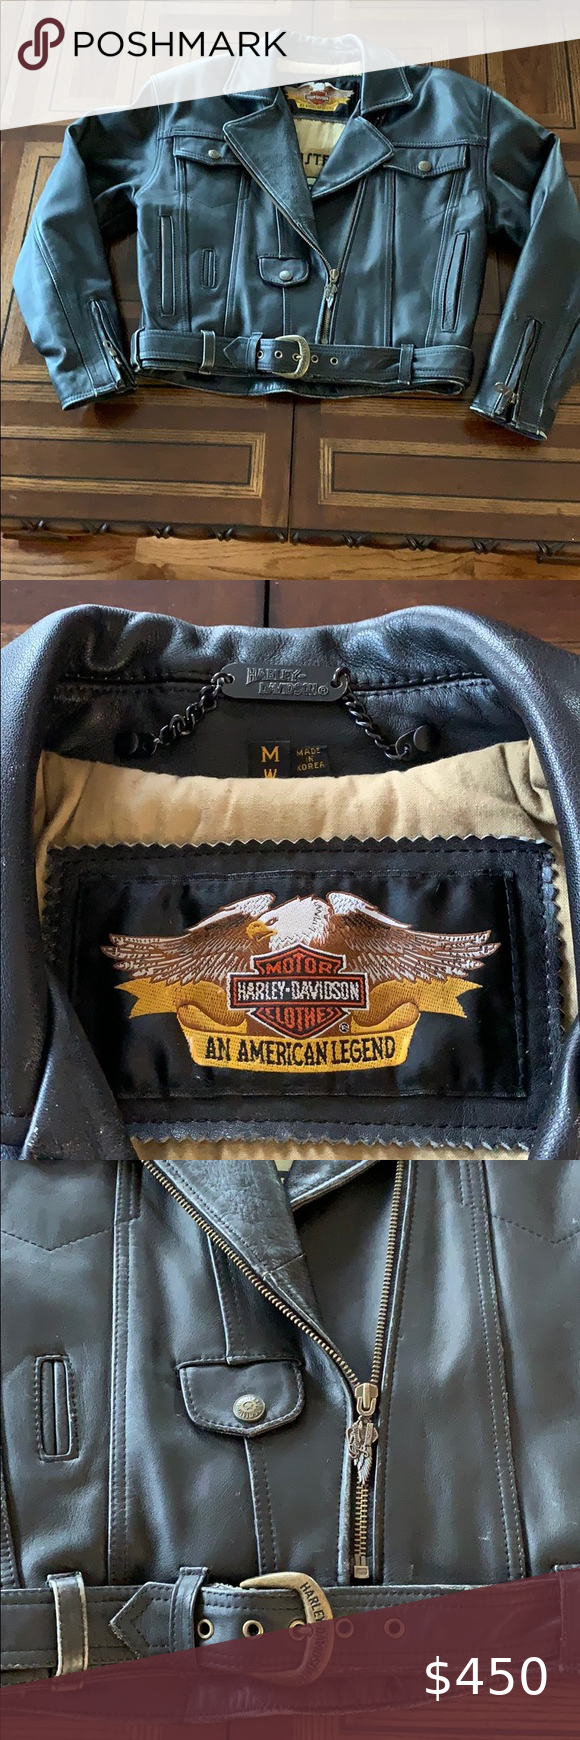 Authentic Genuine Leather Harley Davidson Jacket in 2020